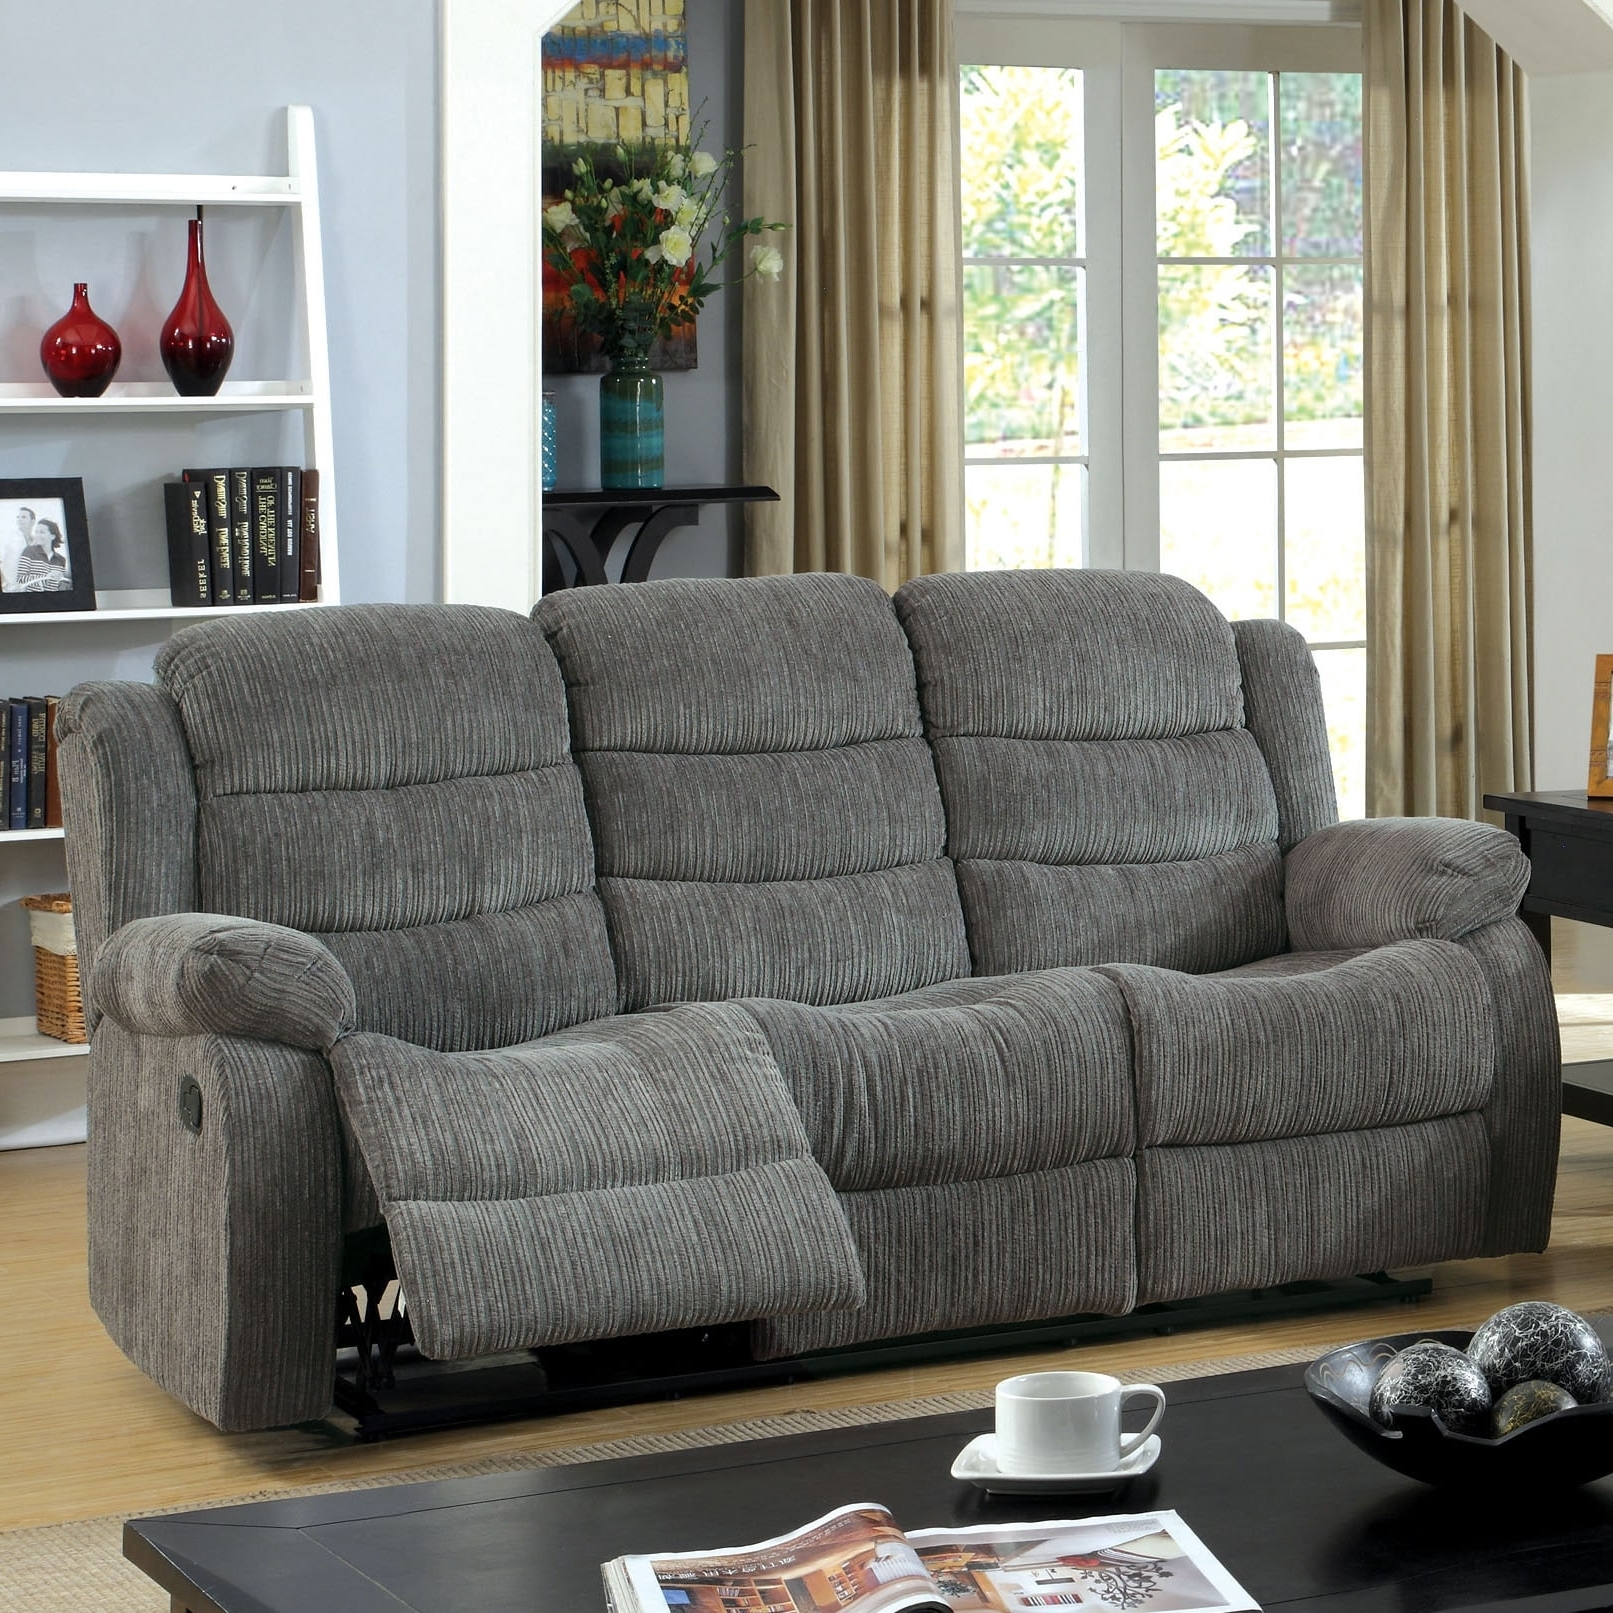 Greensboro Nc Sectional Sofas Pertaining To Most Recently Released American Furniture Warehouse Greensboro Nc Fresh Fresh Sectional (View 14 of 15)